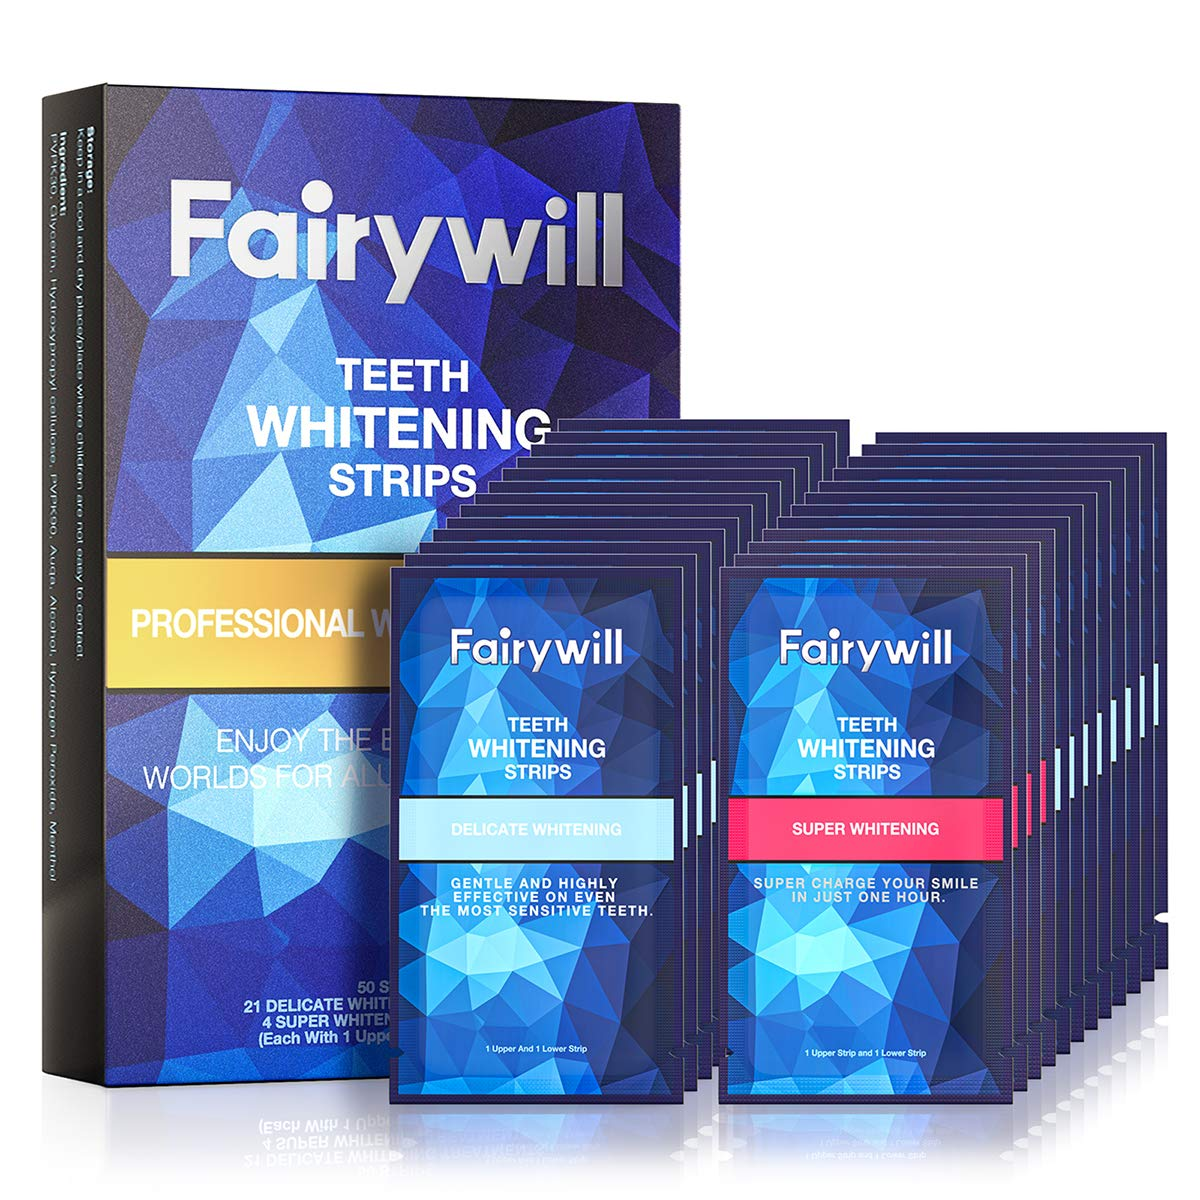 Fairywill Teeth Whitening Strips Pack of 50 pcs, Professional Effect White Strips for Teeth Whitening, Enamel Safe Whitening Strips for Sensitive Teeth, Teeth Whitening Kit Remove Tough Stains: Beauty